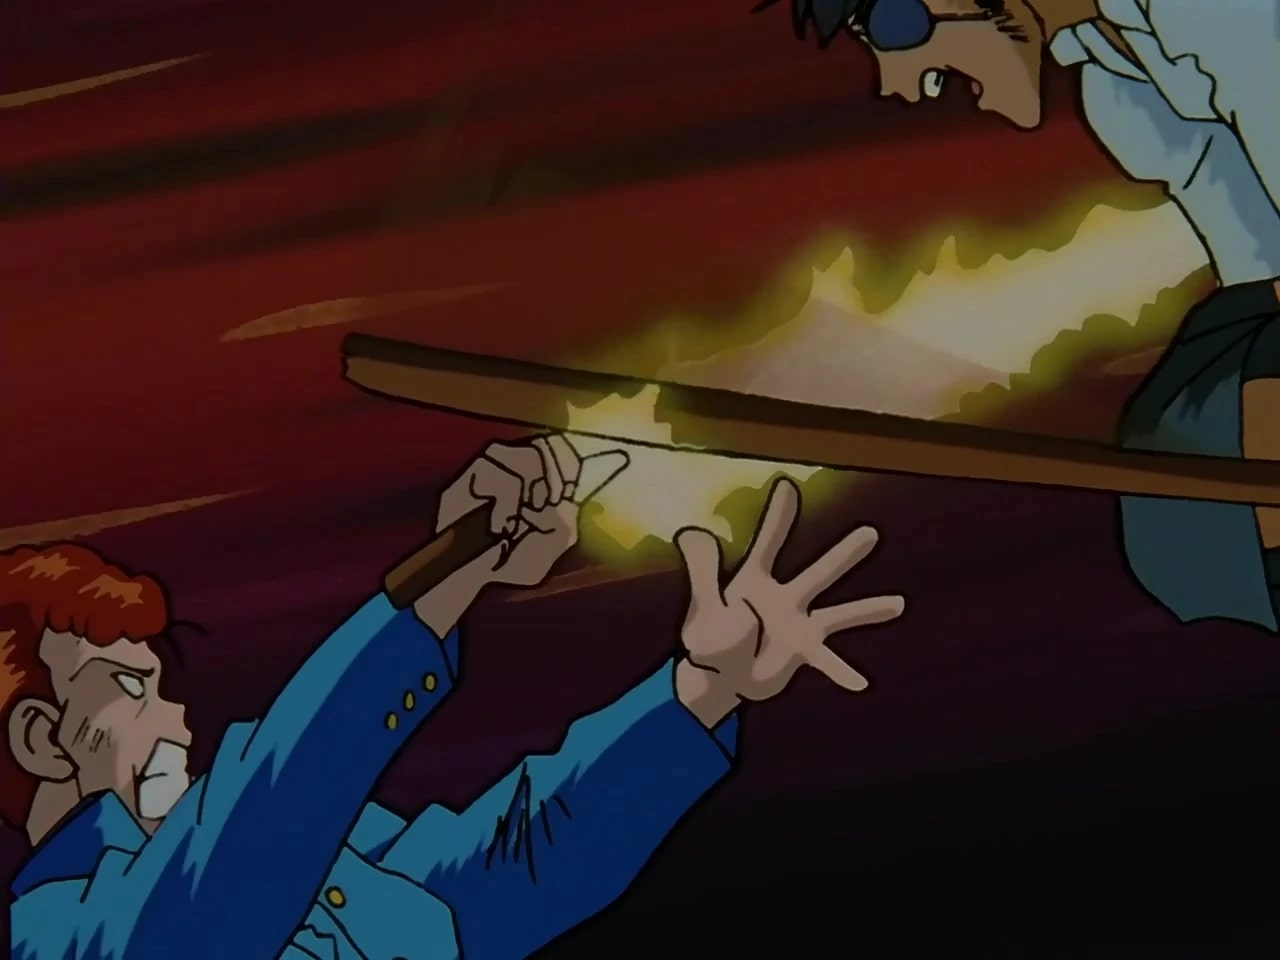 Kuwabara's first spirit sword